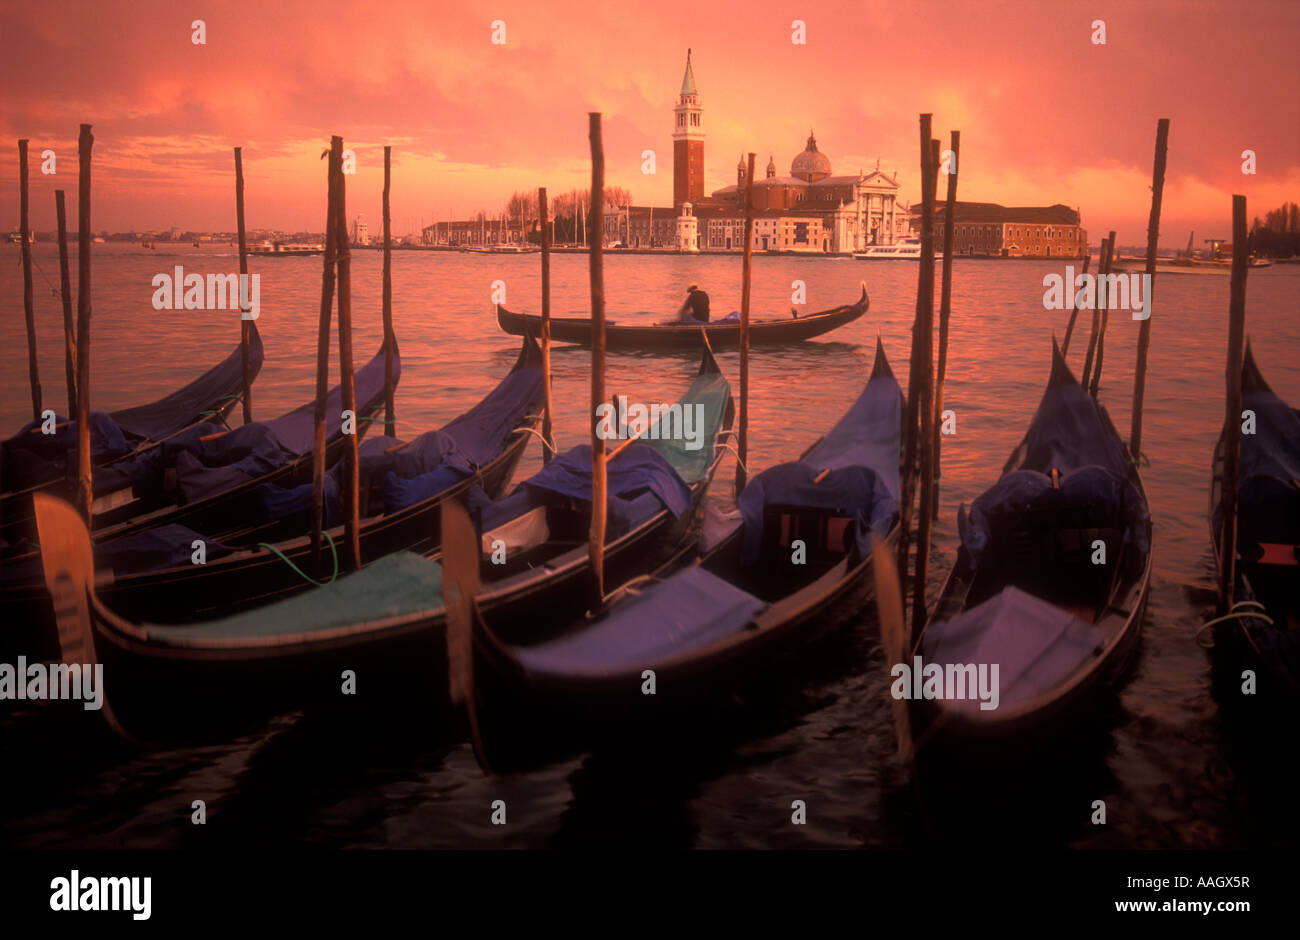 Italy Venice gondolas moored with with view of San Giorgio Maggiore in background - Stock Image